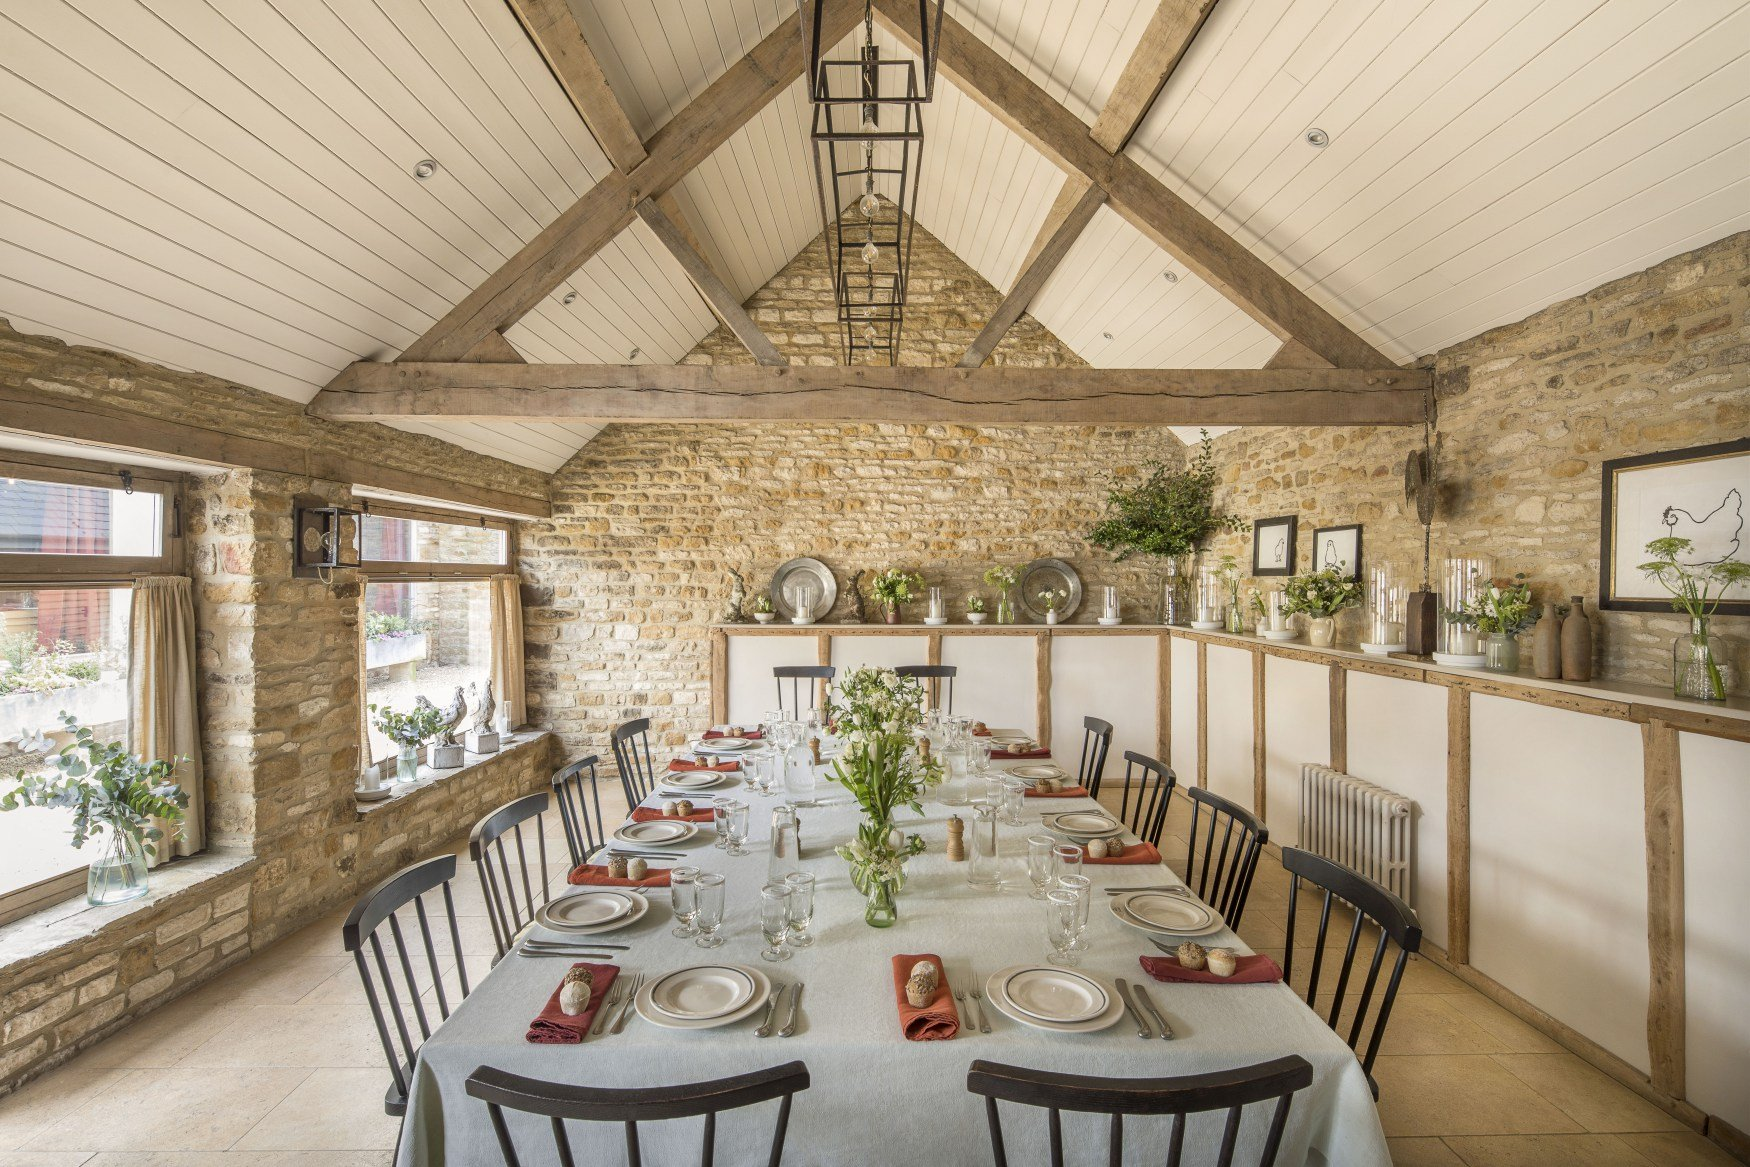 The Wild Rabbit, Kingham Pub with Rooms in Oxfordshire 06